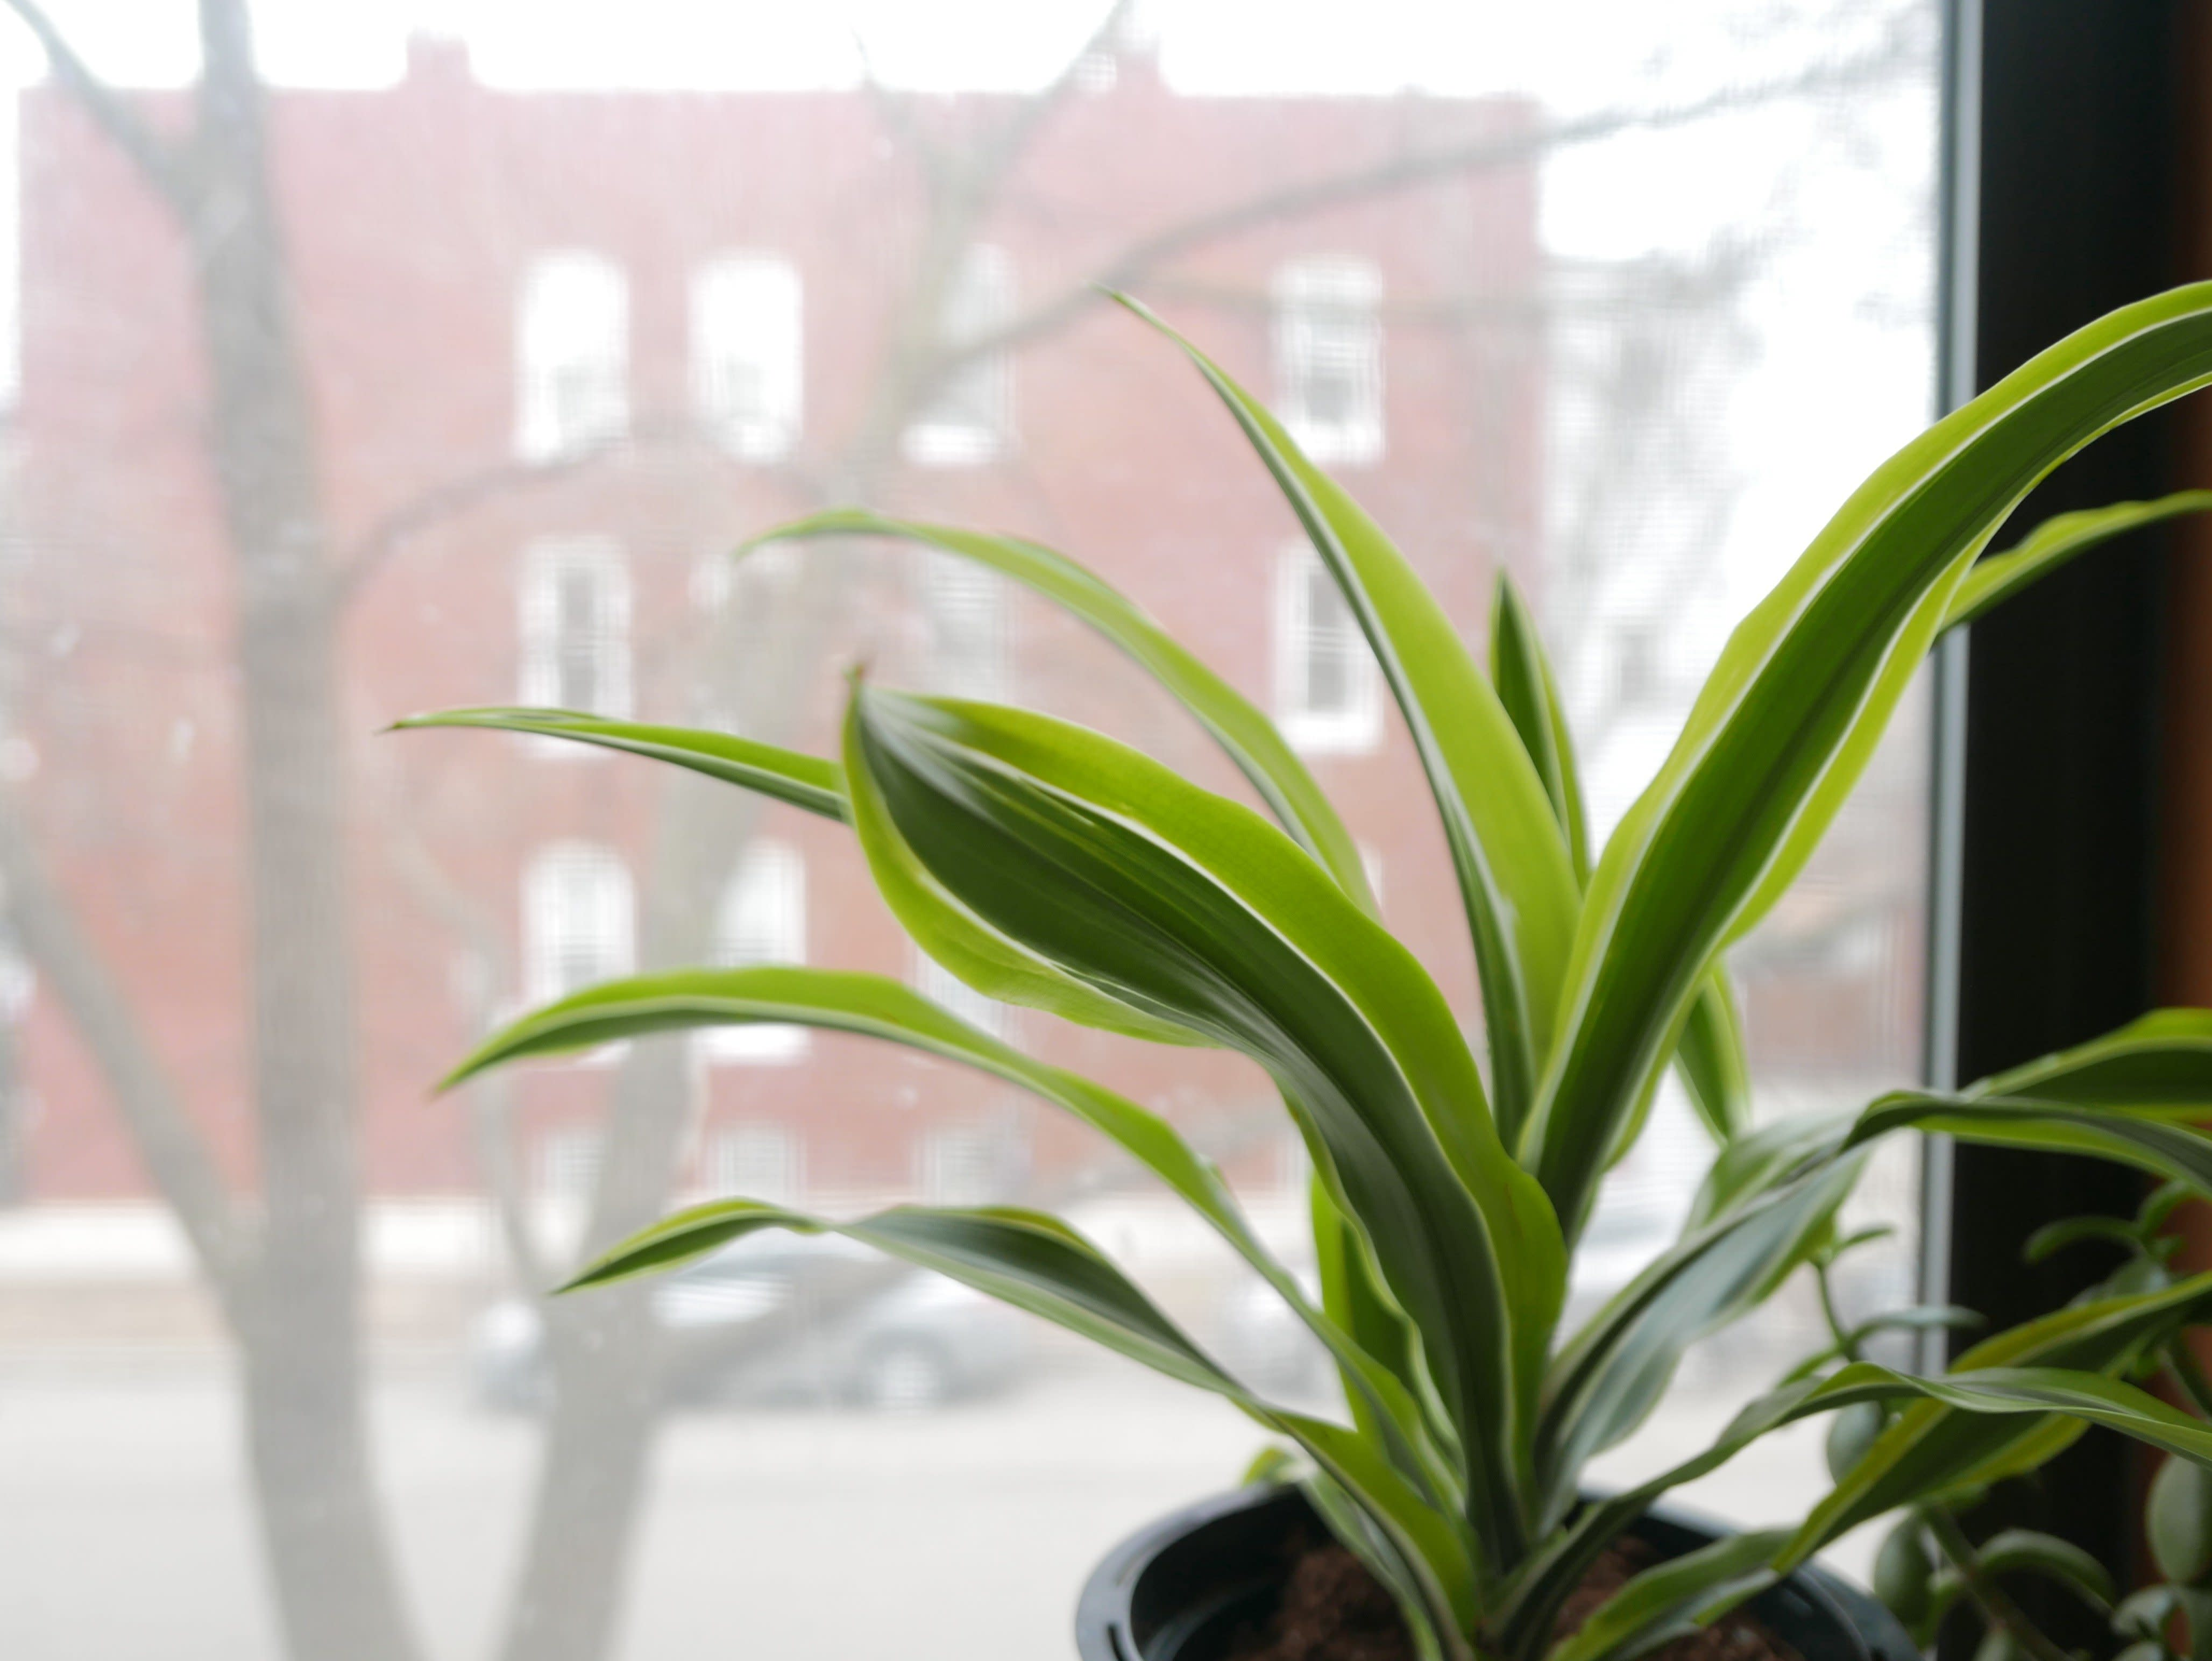 Dumb cane plant by window